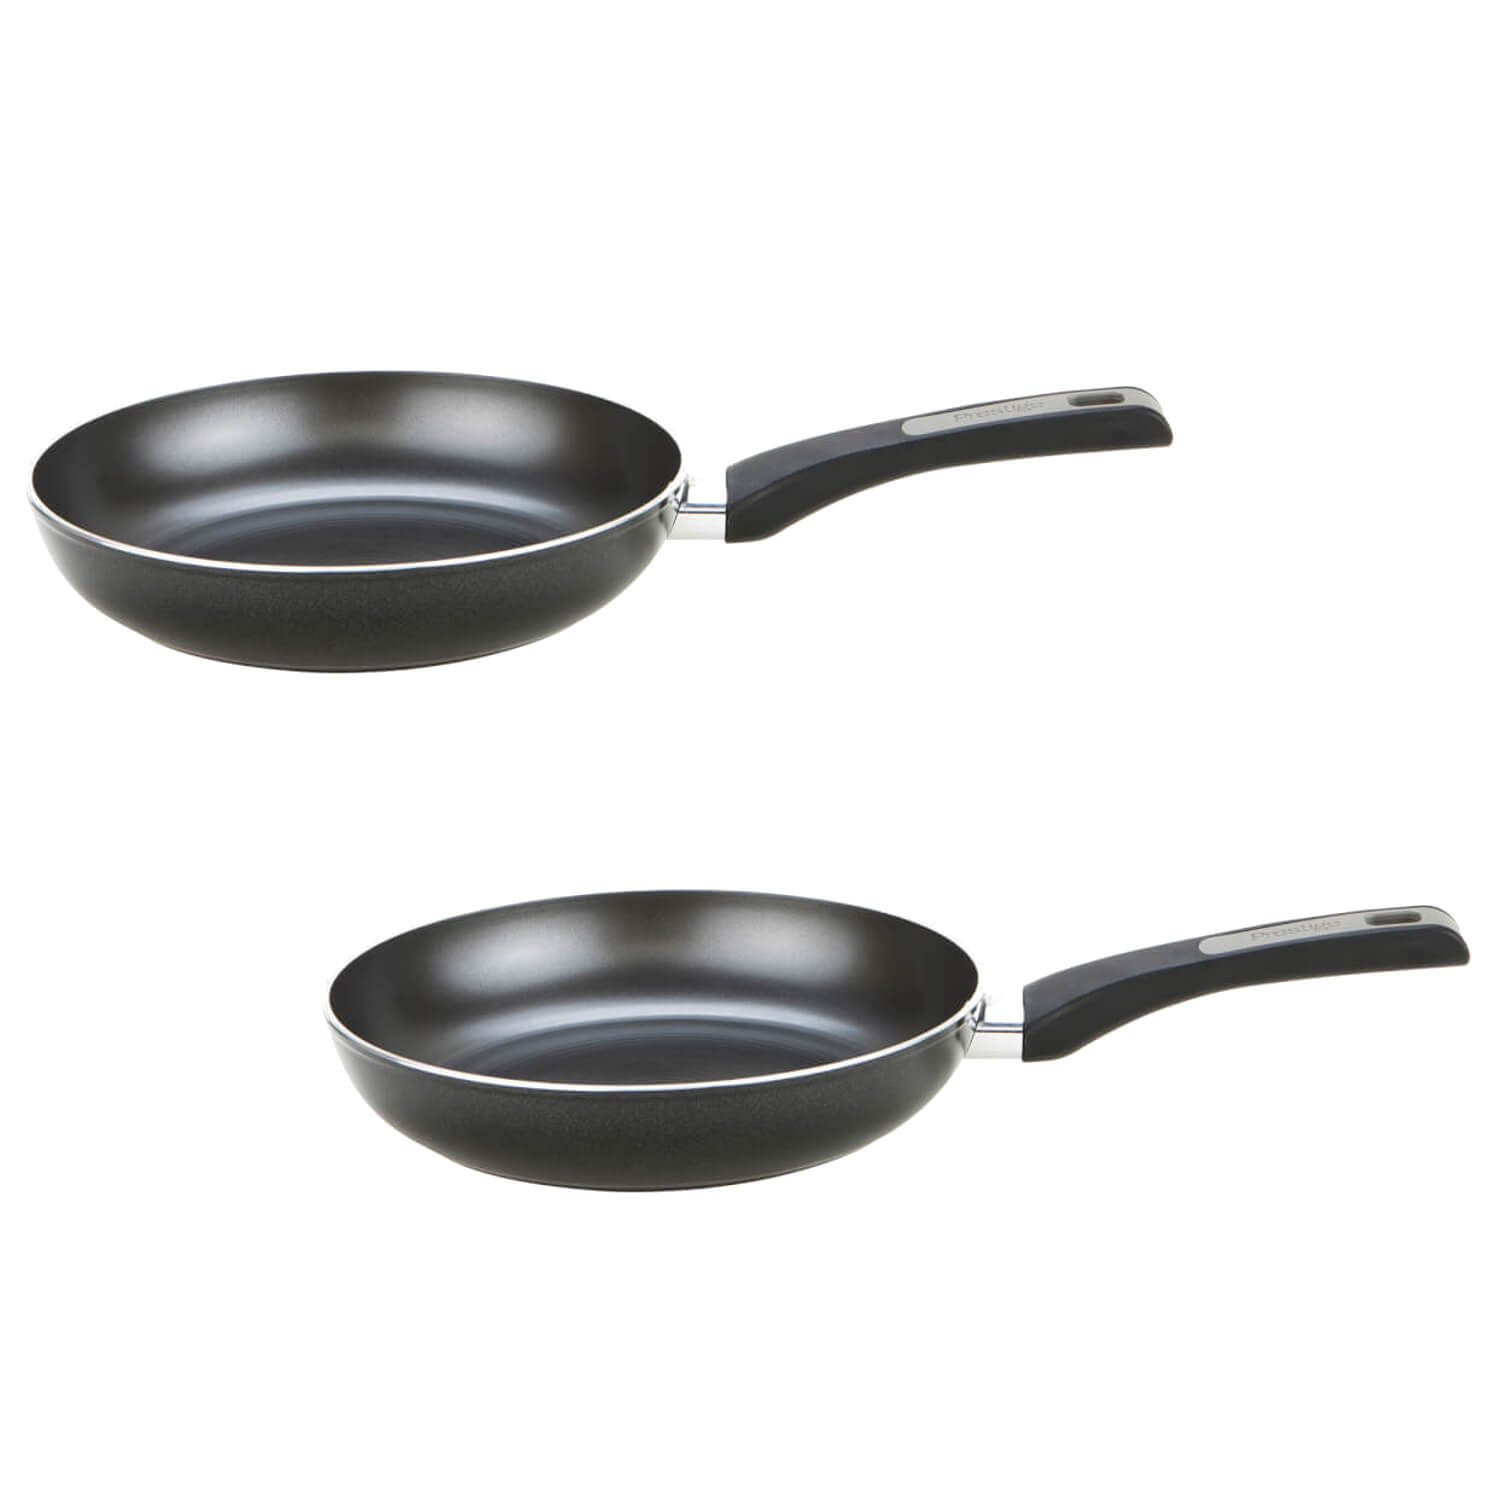 Prestige Dura Forge 2 Piece Fry Pan Set - 25cm & 30cm